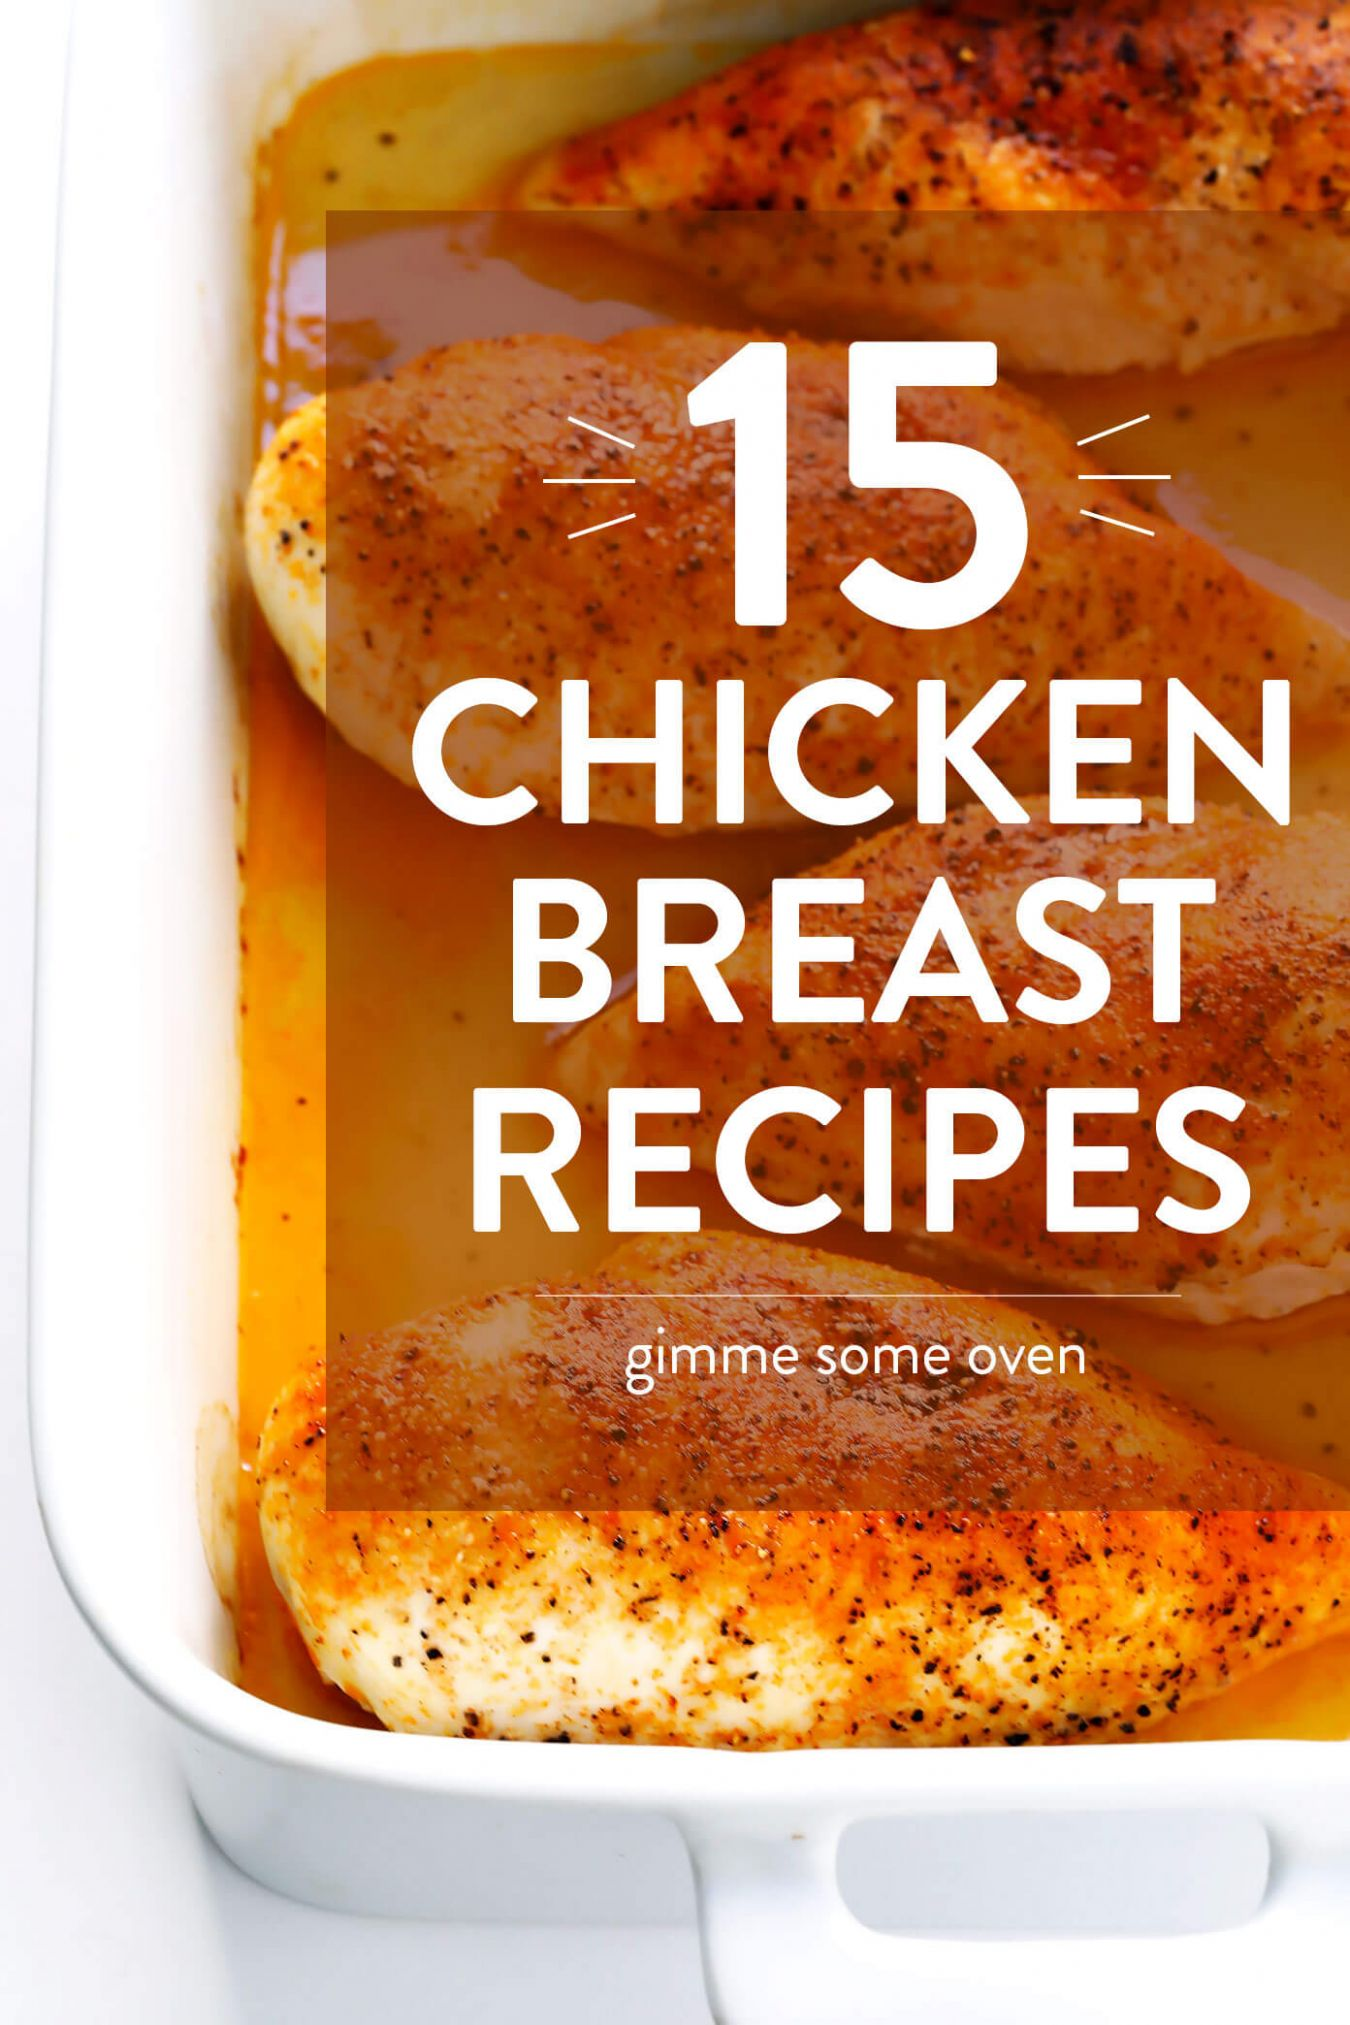 9 Favorite Chicken Breast Recipes | Gimme Some Oven